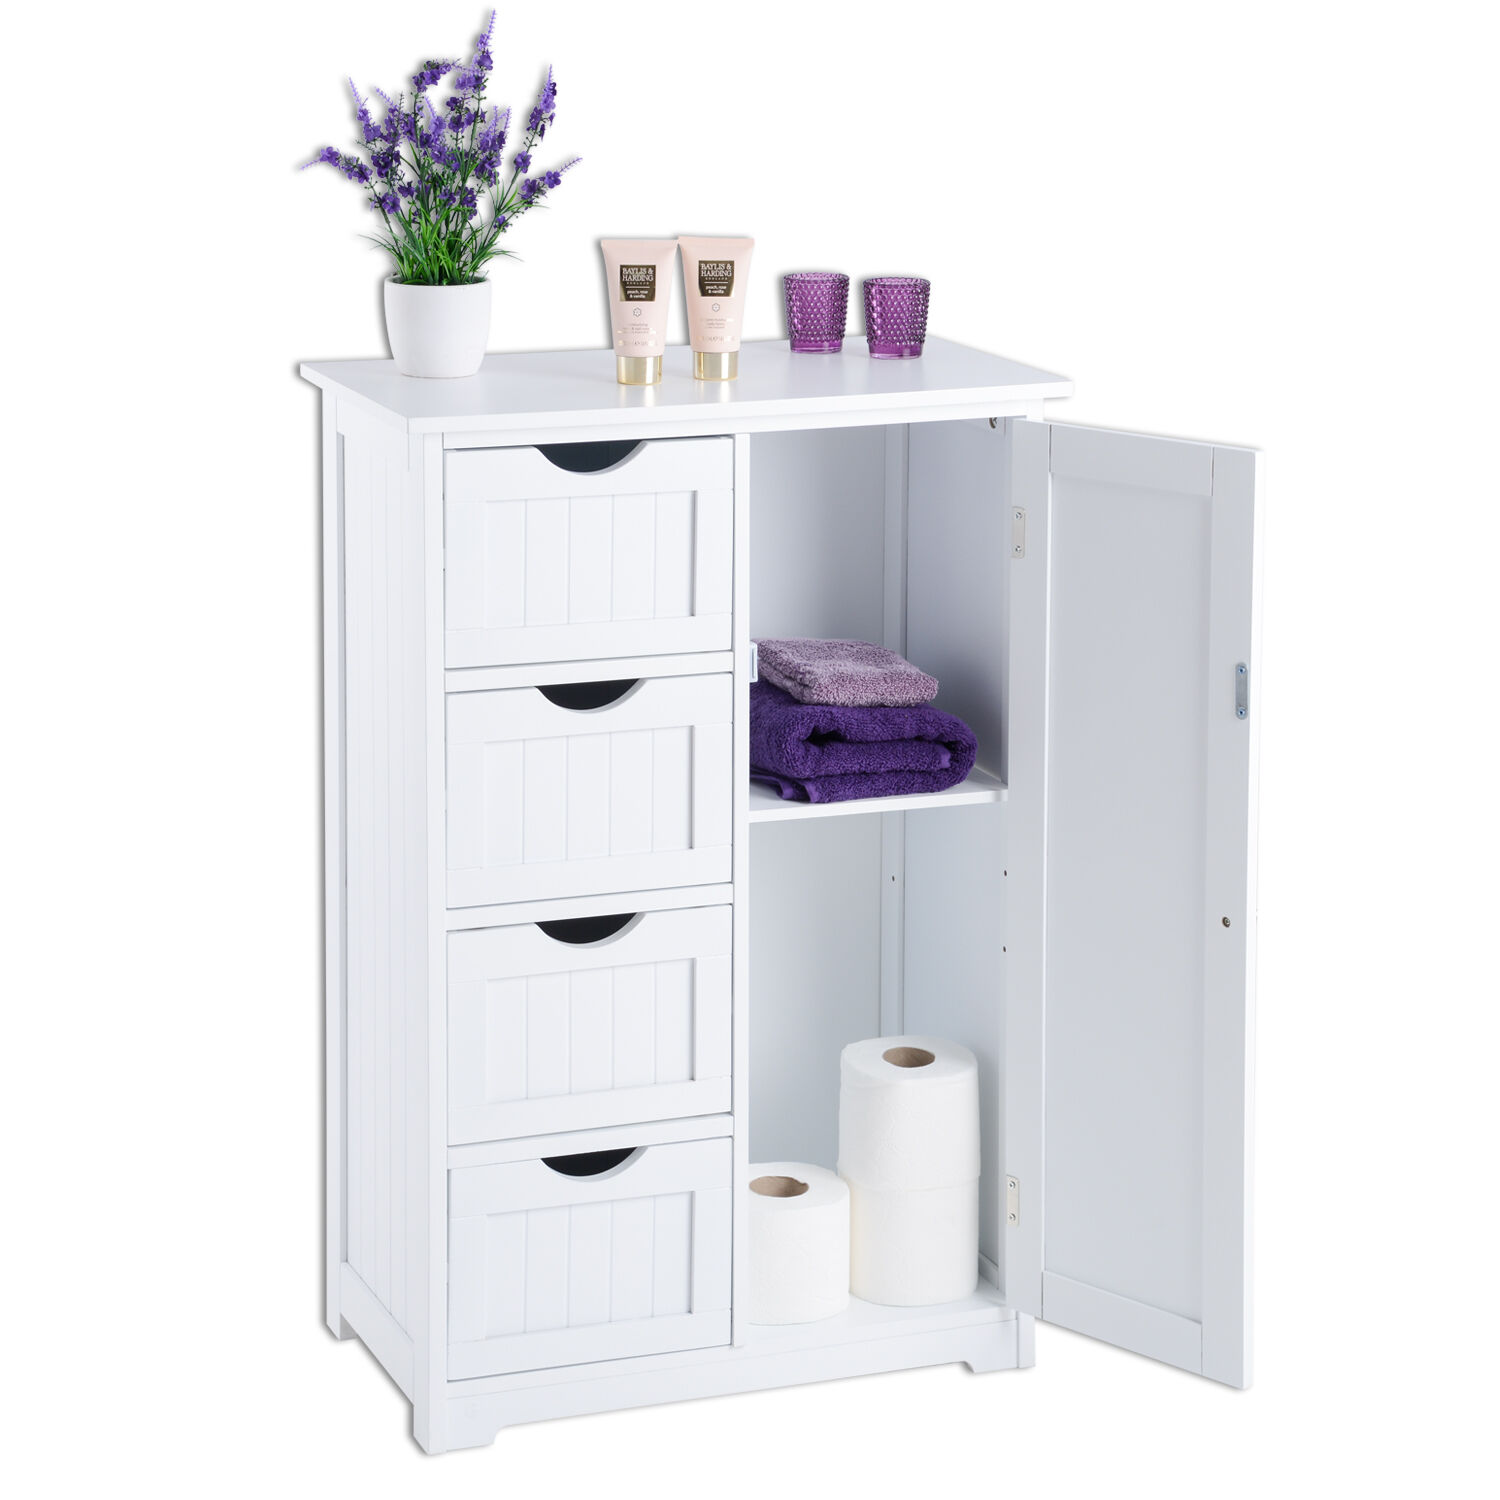 White wooden 4 drawer bathroom cabinet storage cupboard for Bathroom furniture drawers